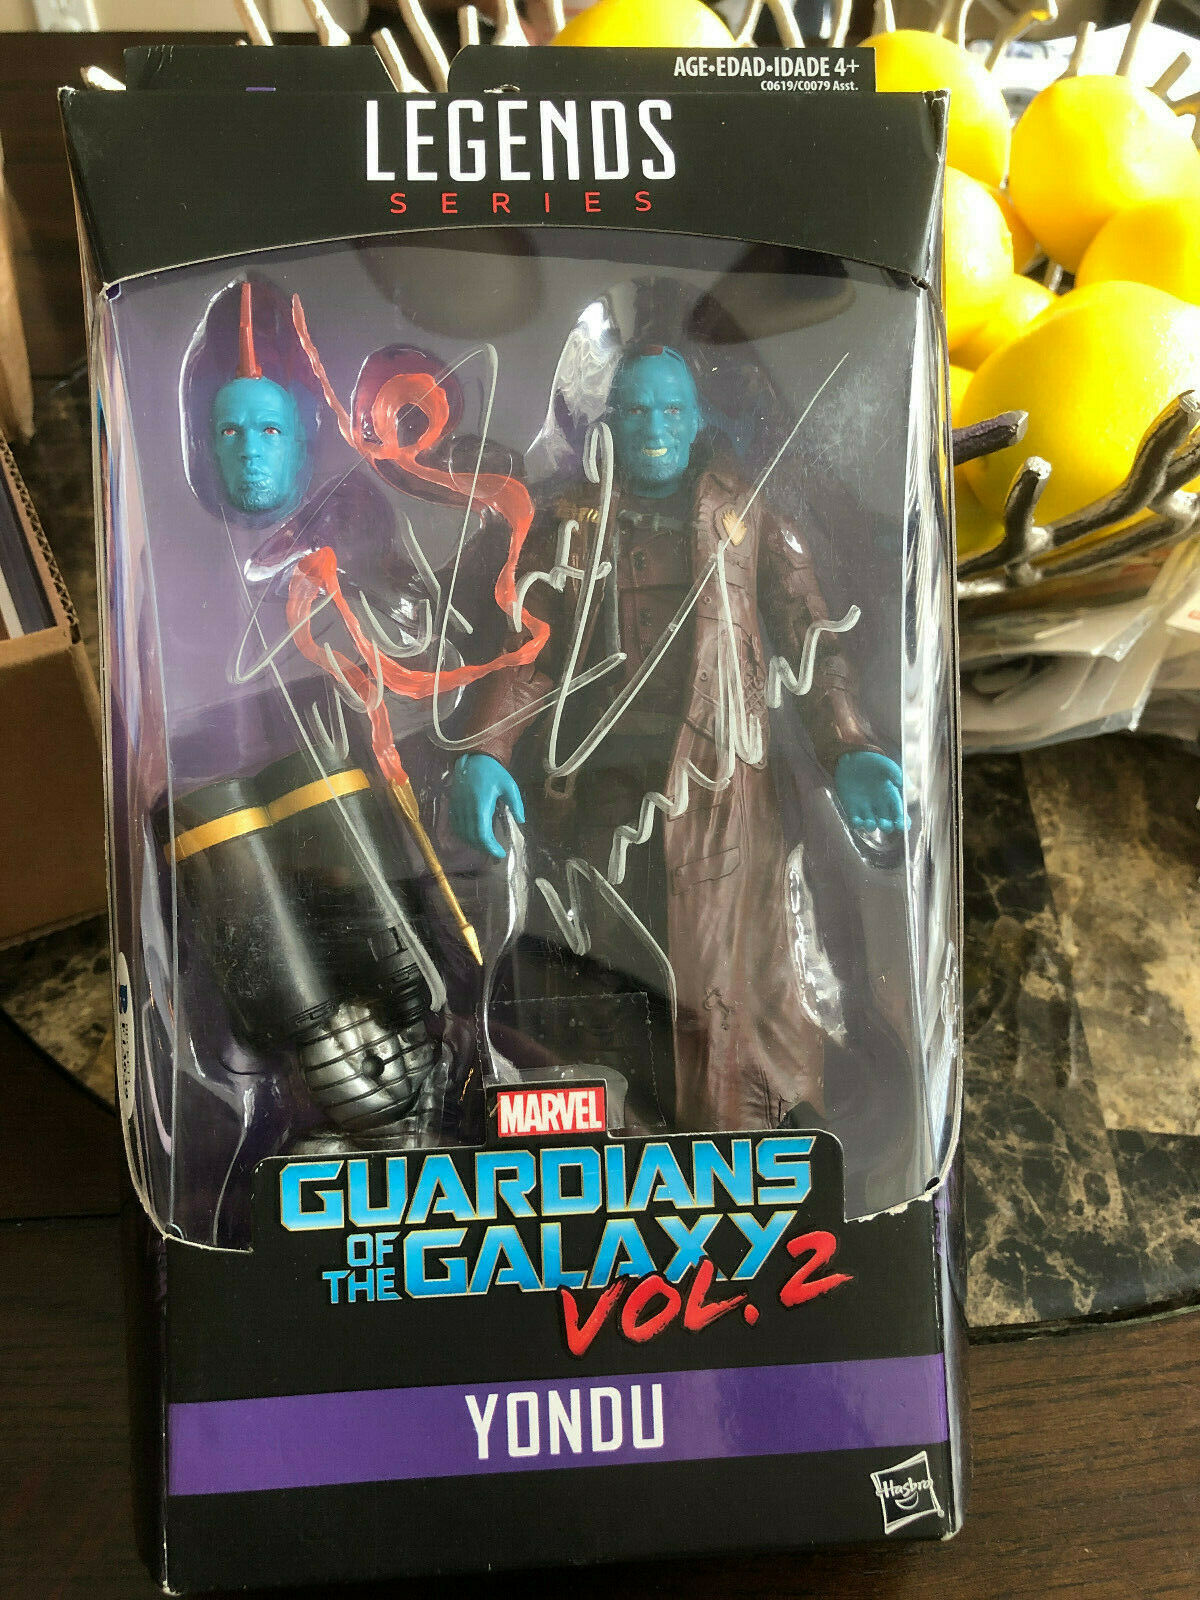 Marvel Legends Yondu Guardianes de la Galaxia vol. 2 Nuevo Hasbro 2016 Rooker Auto